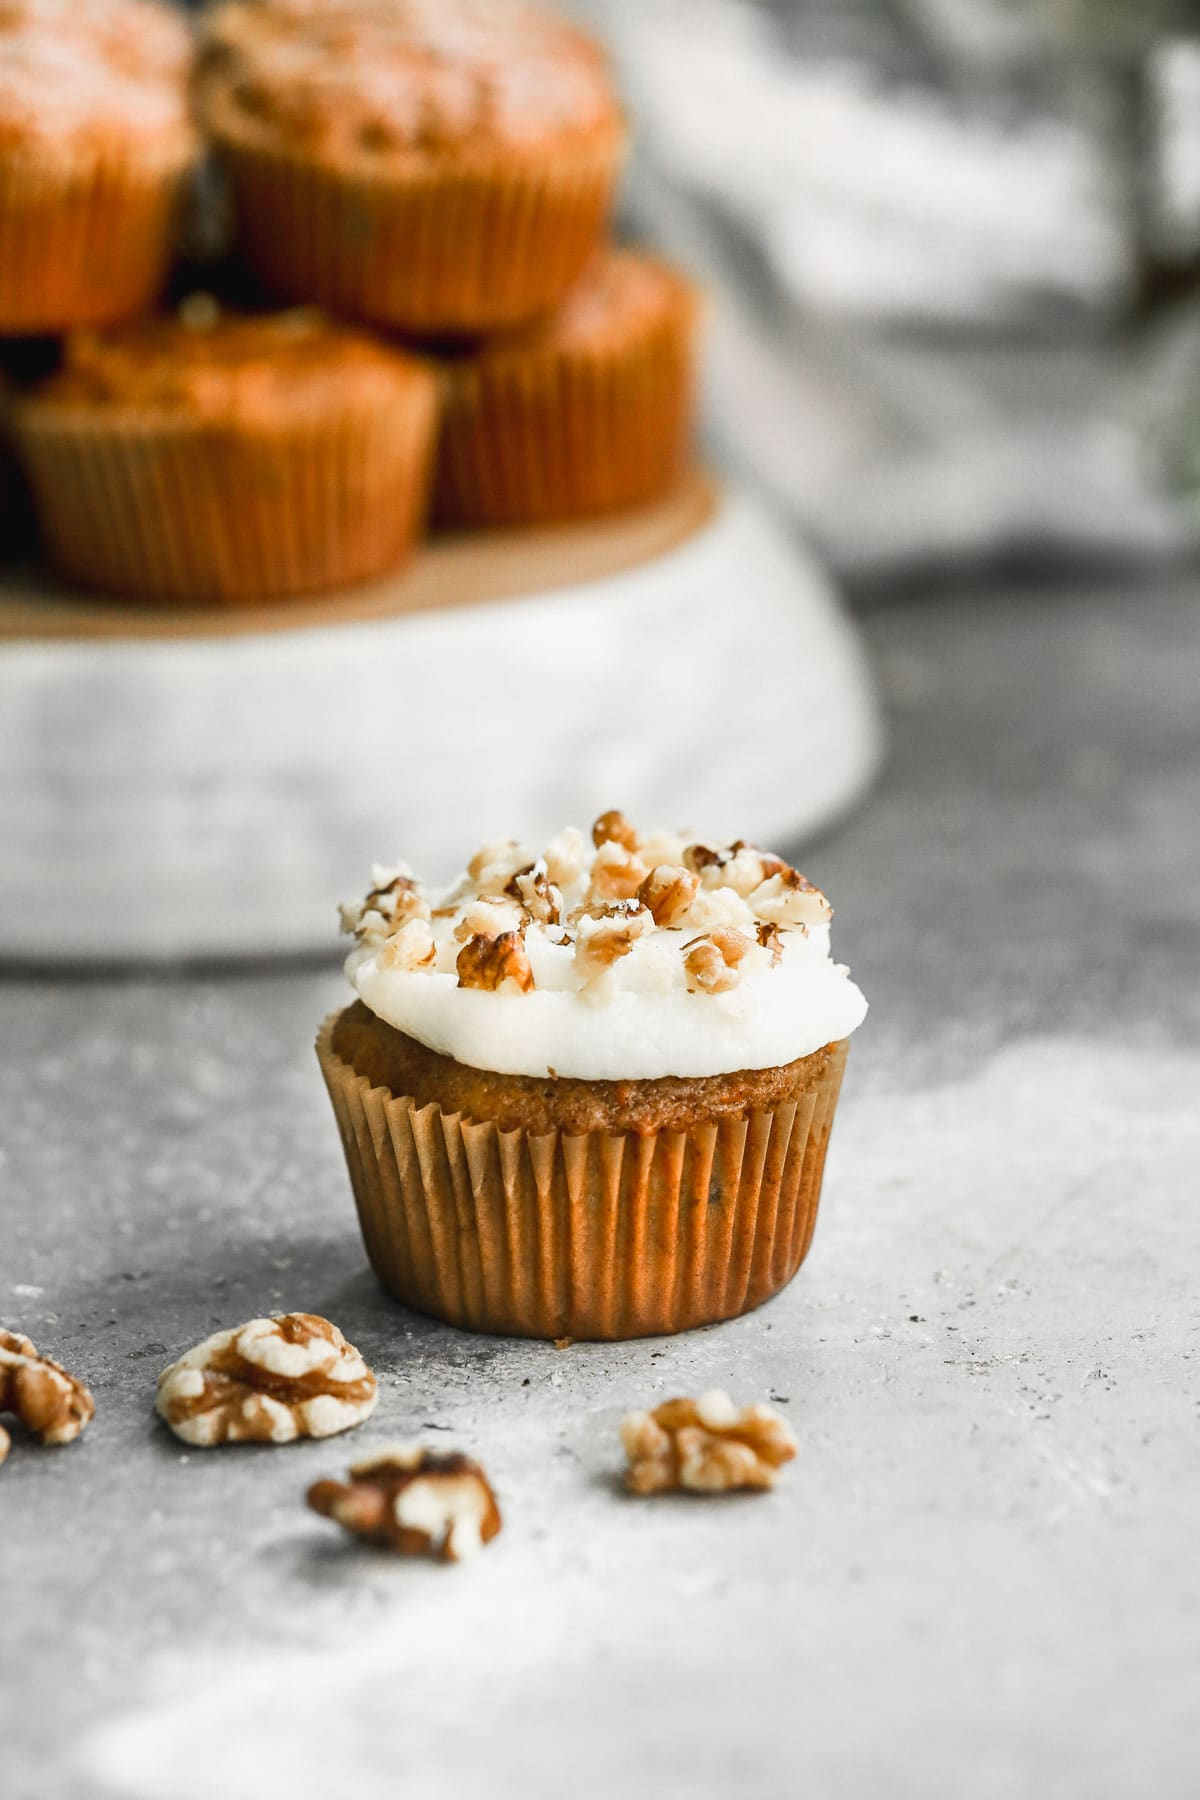 A fluffy carrot cake cupcake with cream cheese frosting and sprinkled with nuts